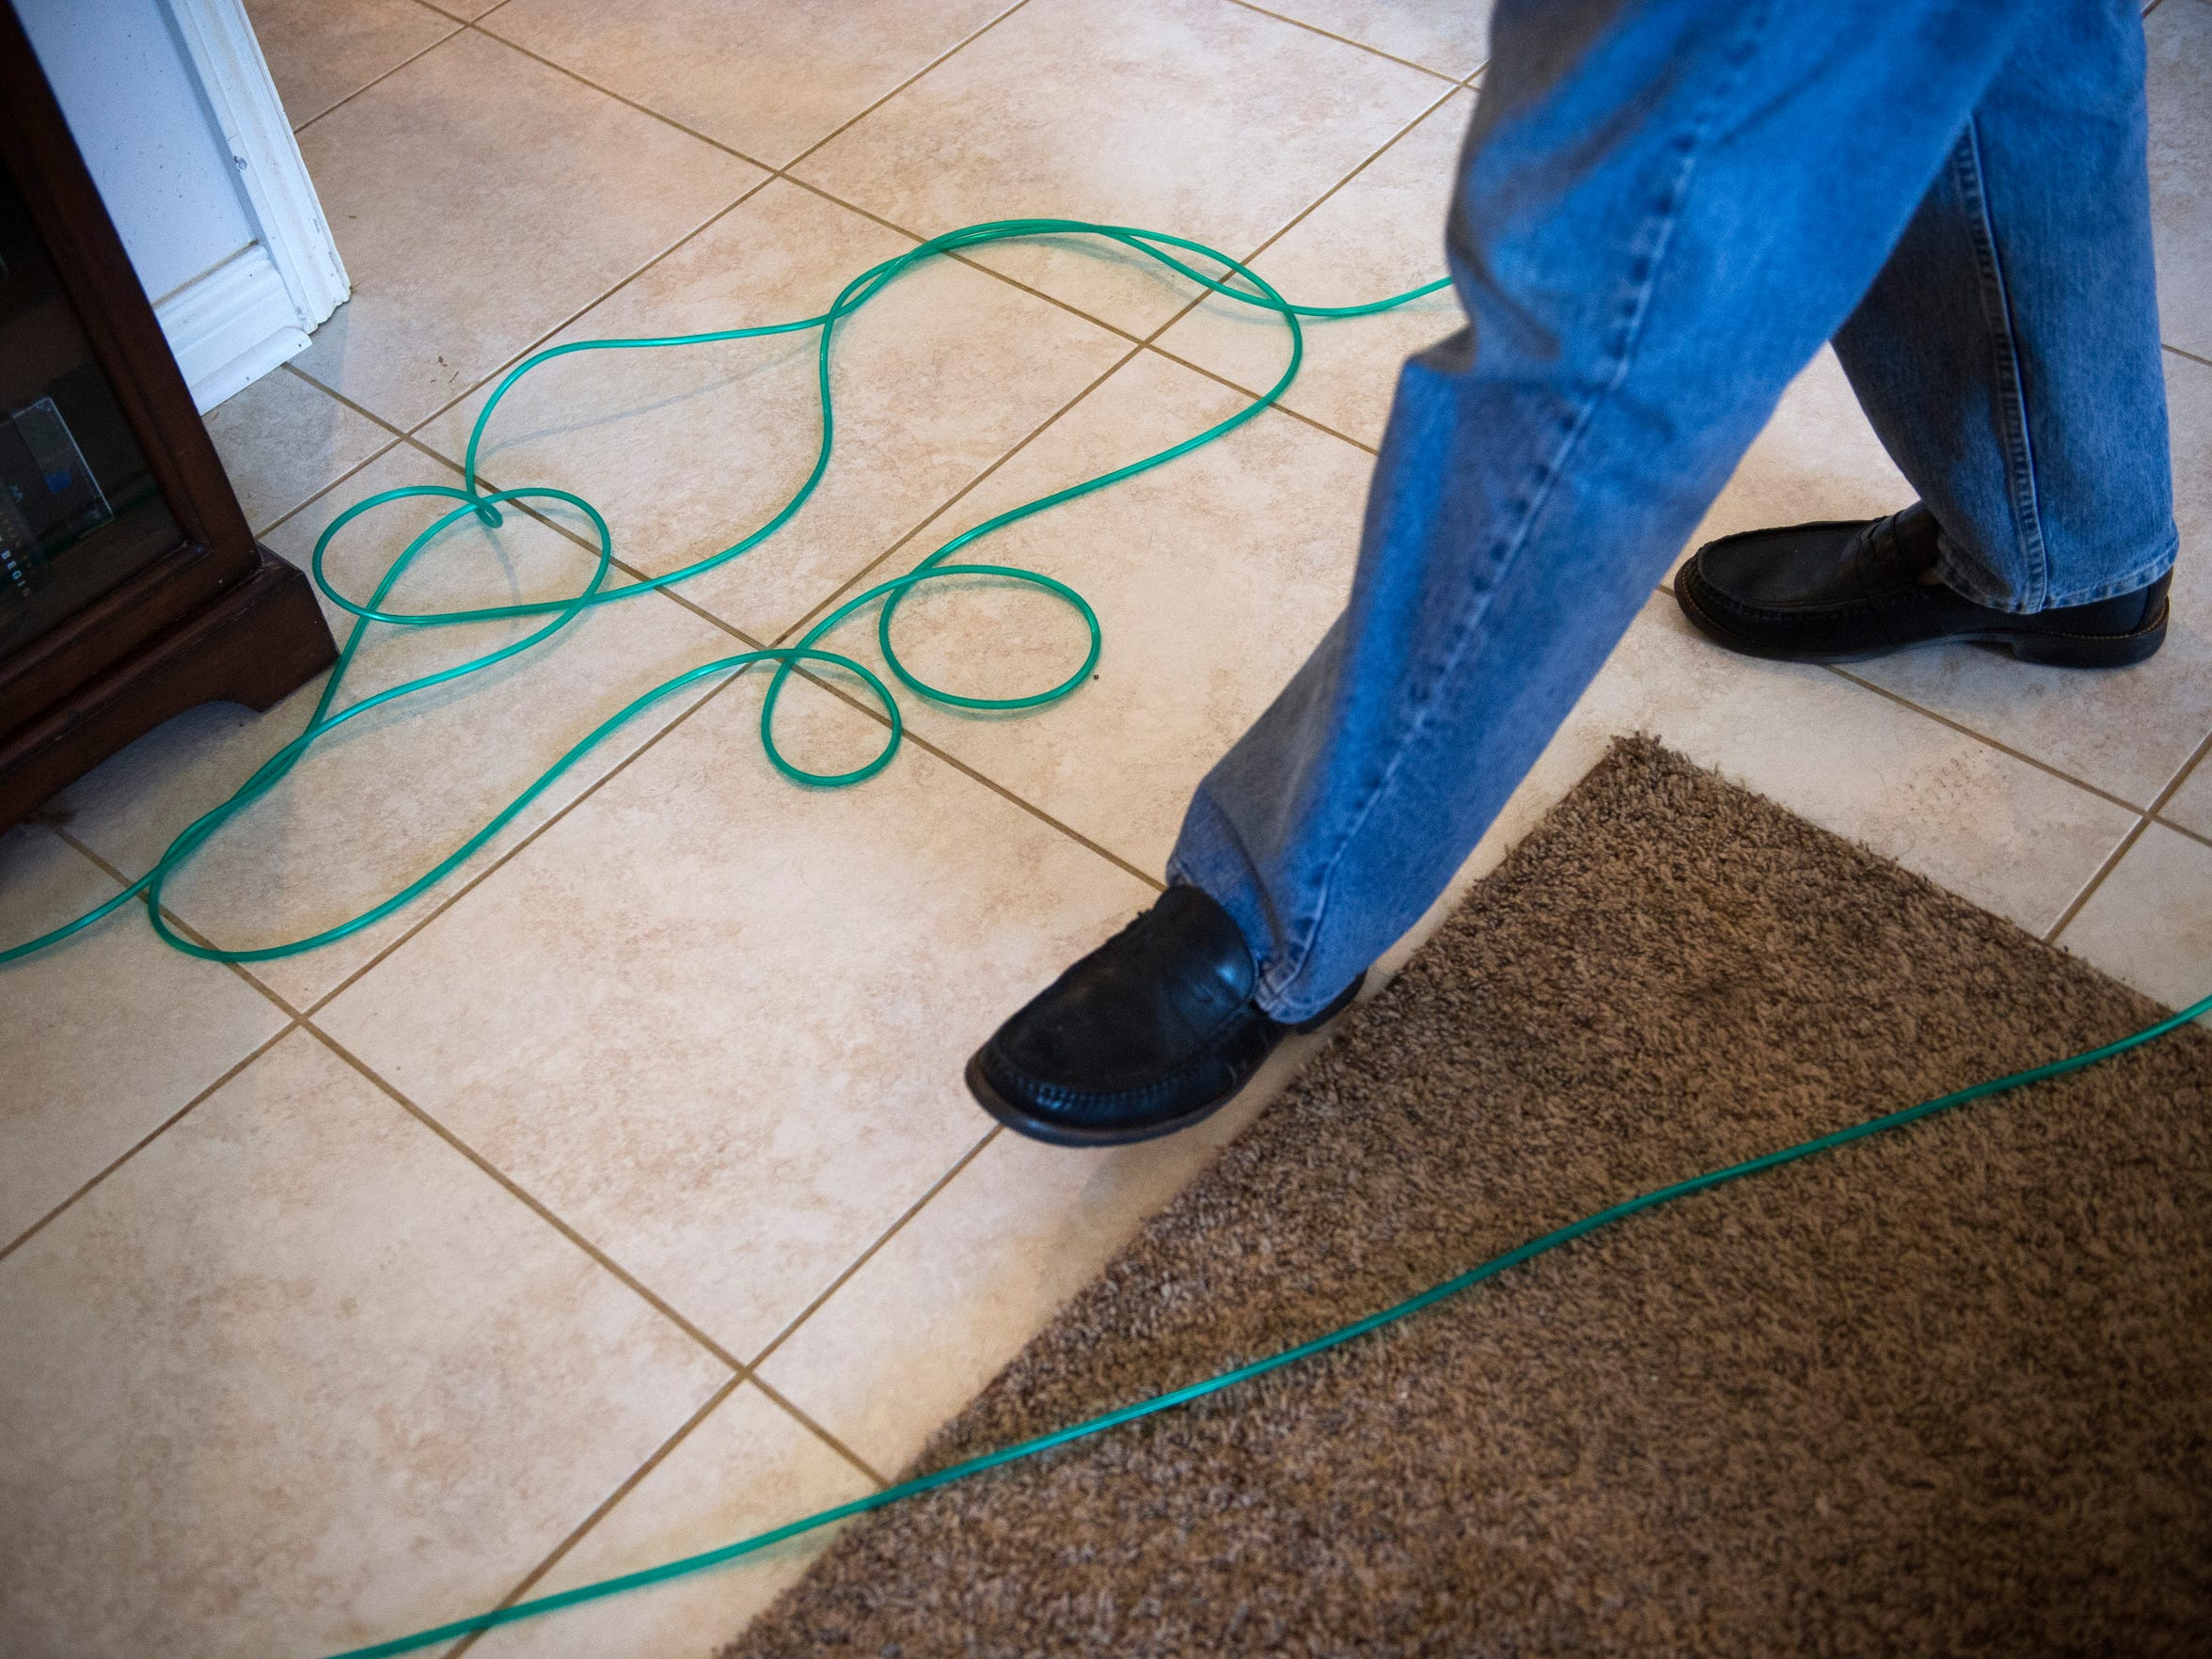 John Morton, of Evansville, walks carefully around a hose connected to an oxygen tank in his home, Thursday, Aug. 25, 2016. John and his wife, Carole, have been living with alpha-1 antitrypsin deficiency, a genetic disorder that can lead to lung and liver diseases.